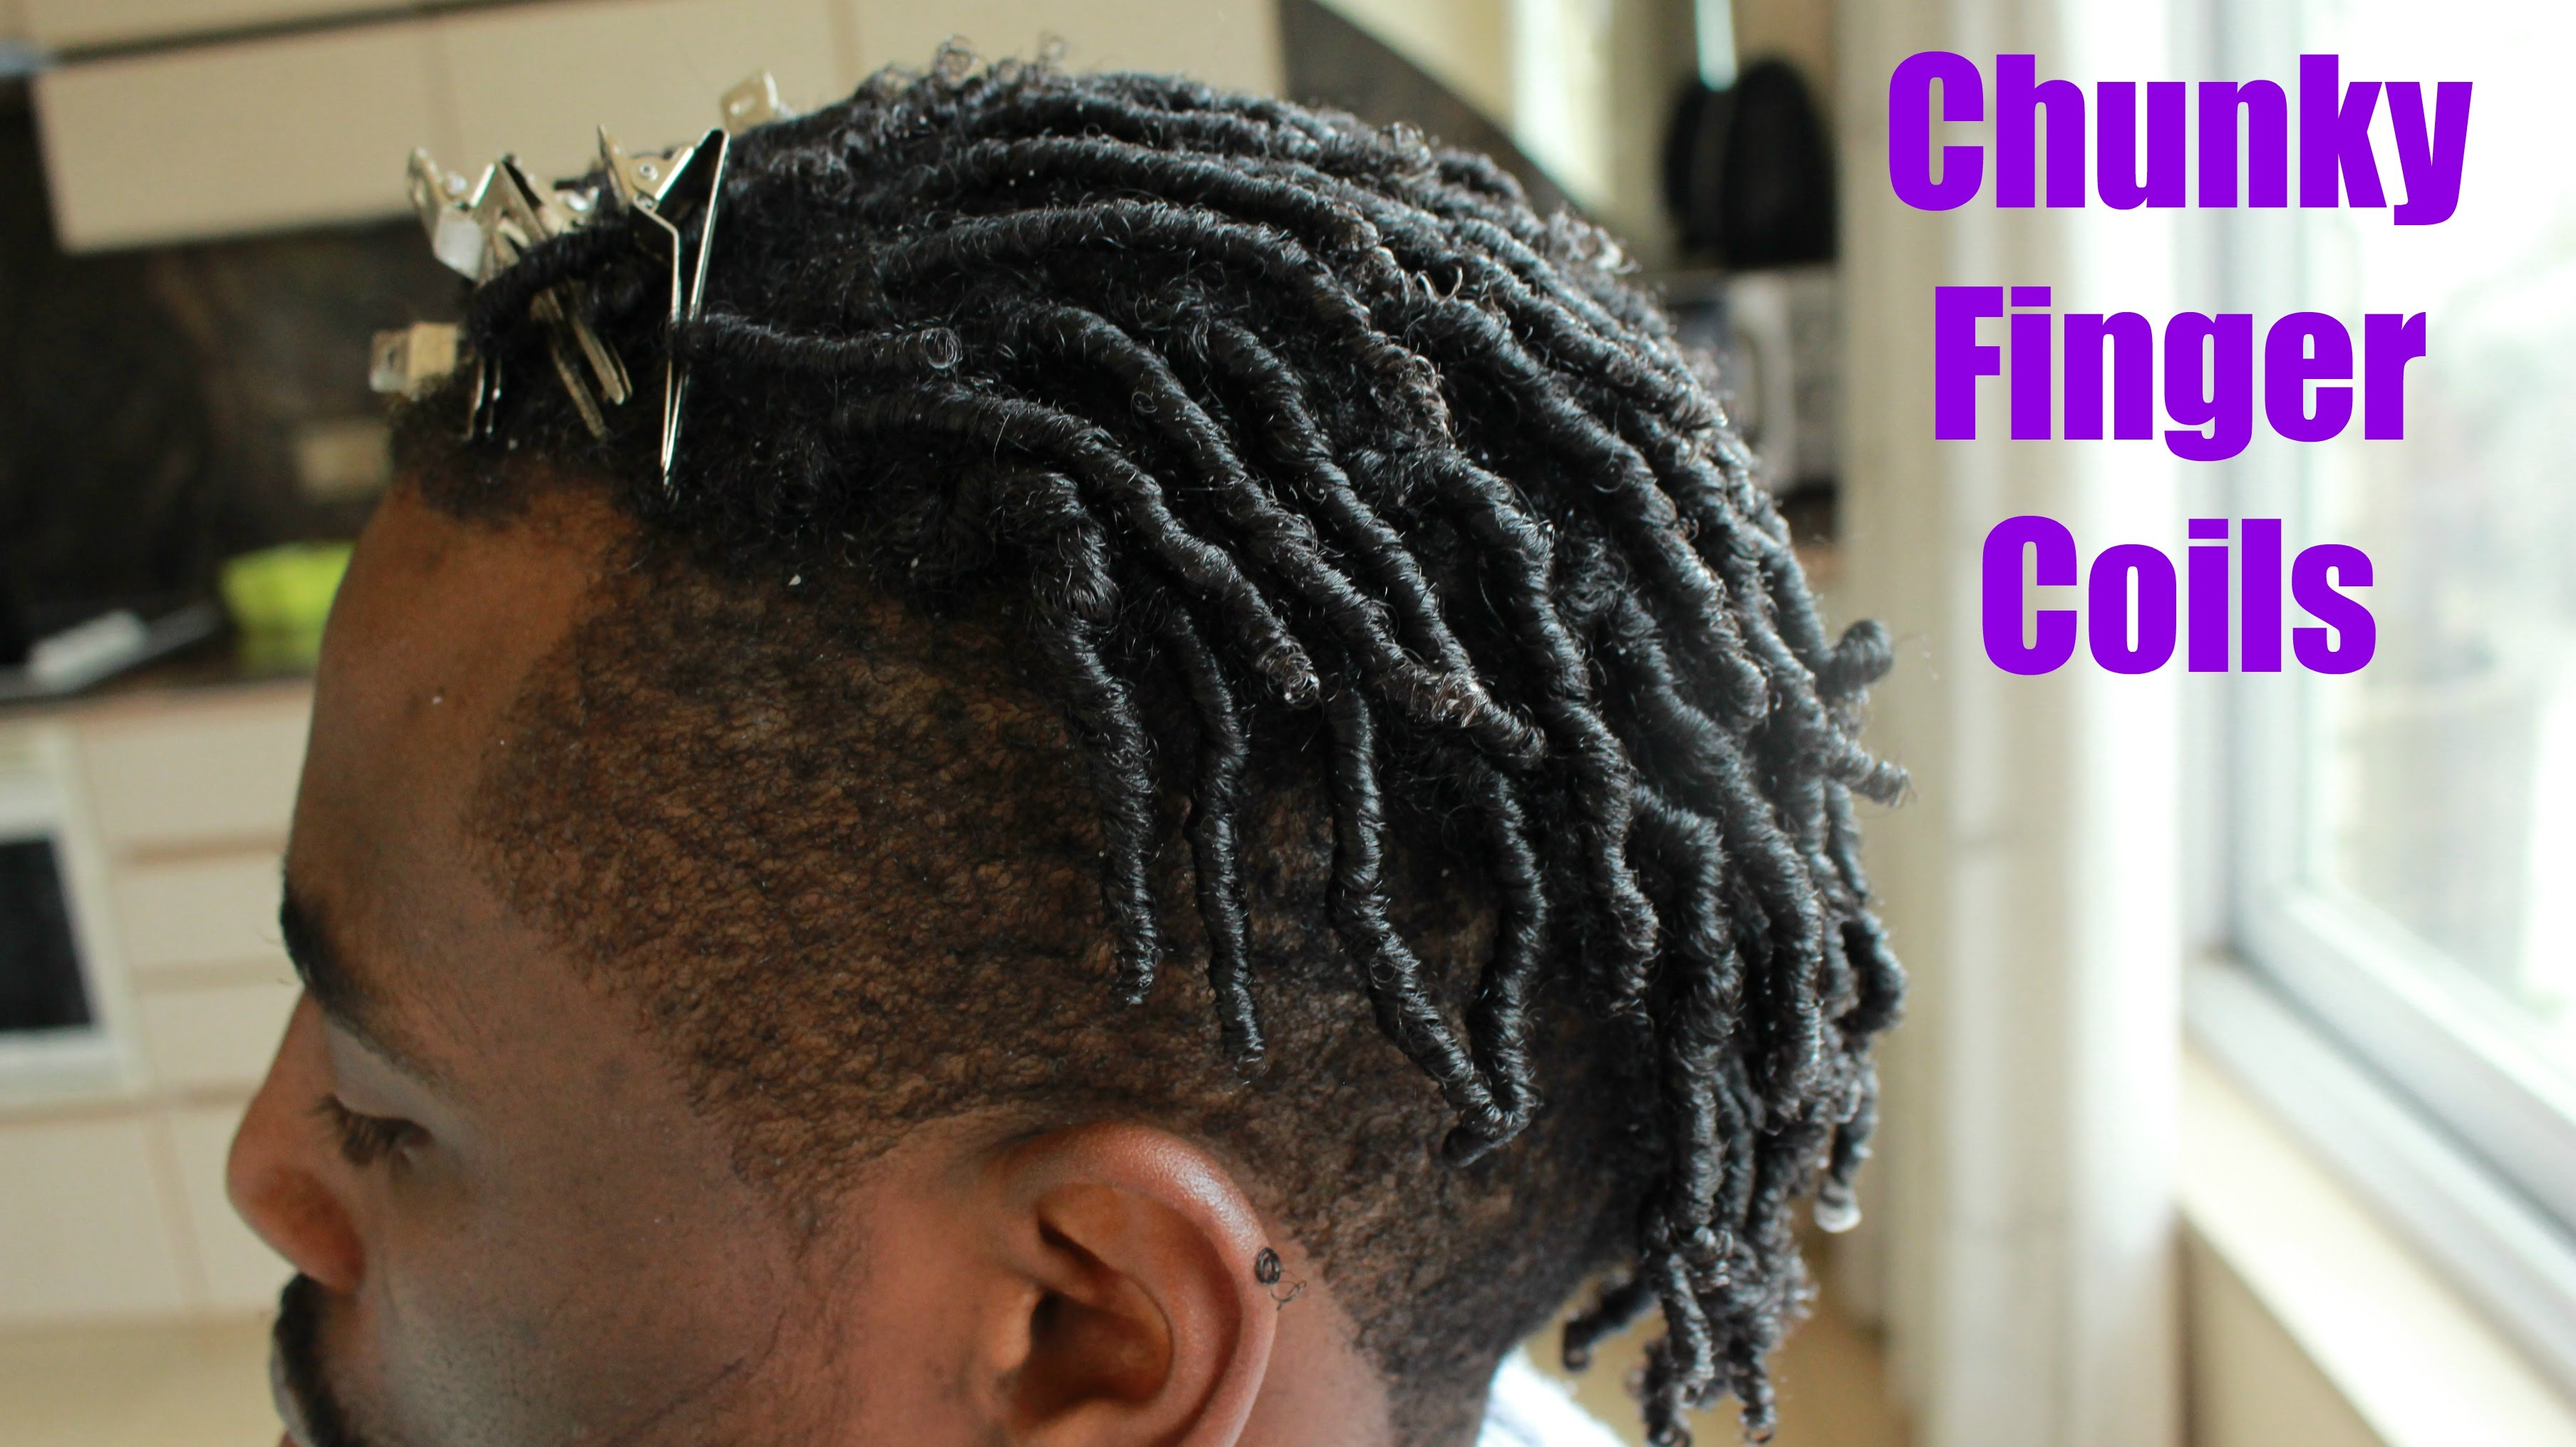 Peachy Men Hair How To Do Chunky Finger Coils Tutorial Adore Natural Me Natural Hairstyles Runnerswayorg